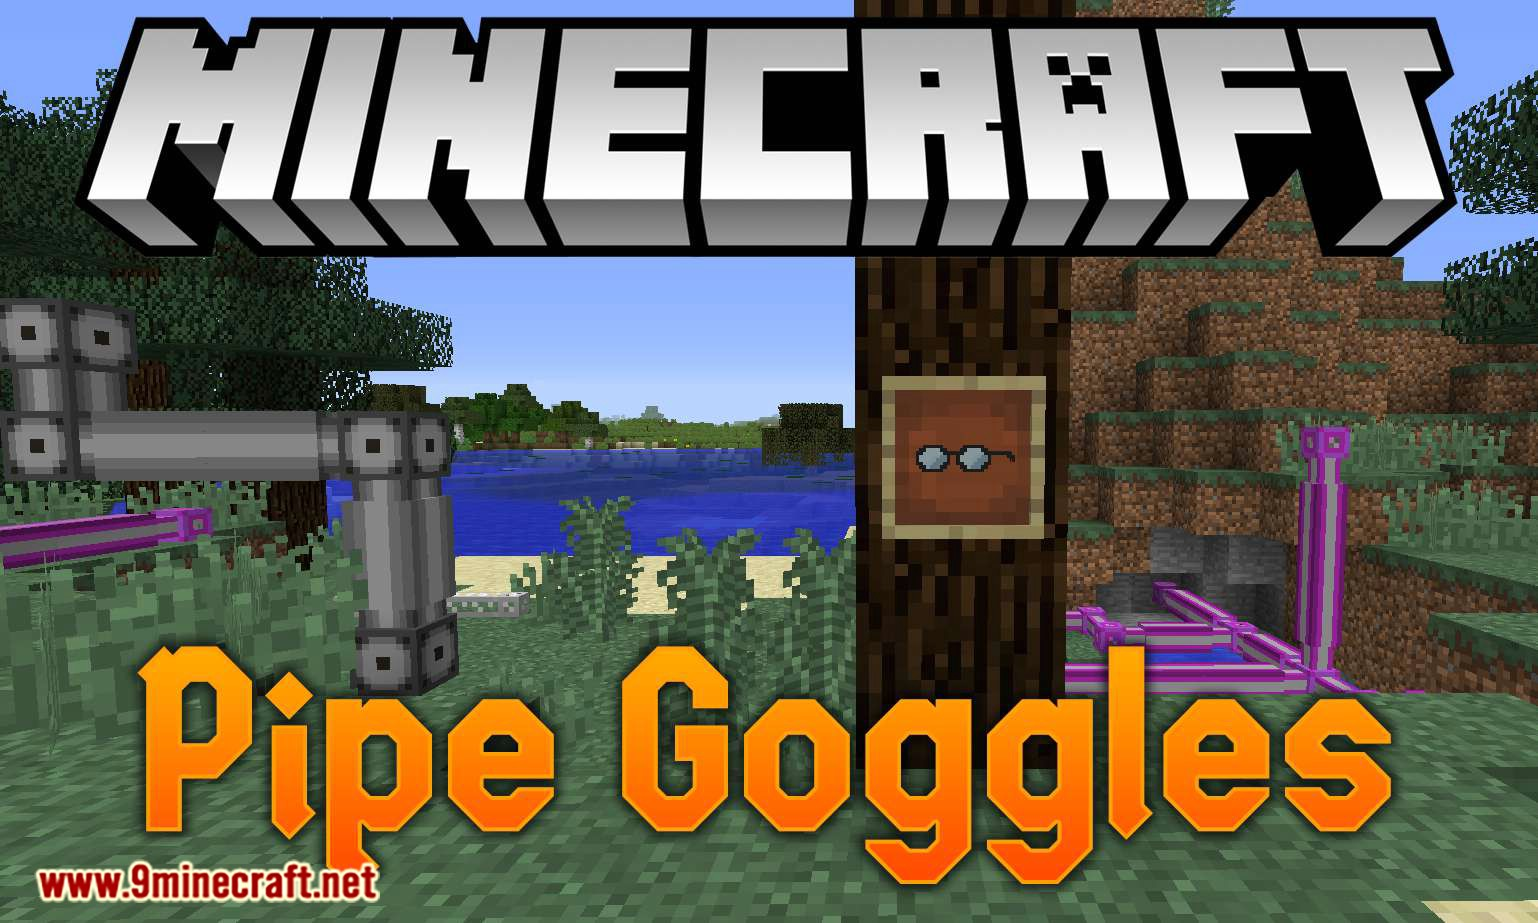 Pipe Goggles mod for minecraft logo - How To Install Minecraft Hacks - Free Game Hacks